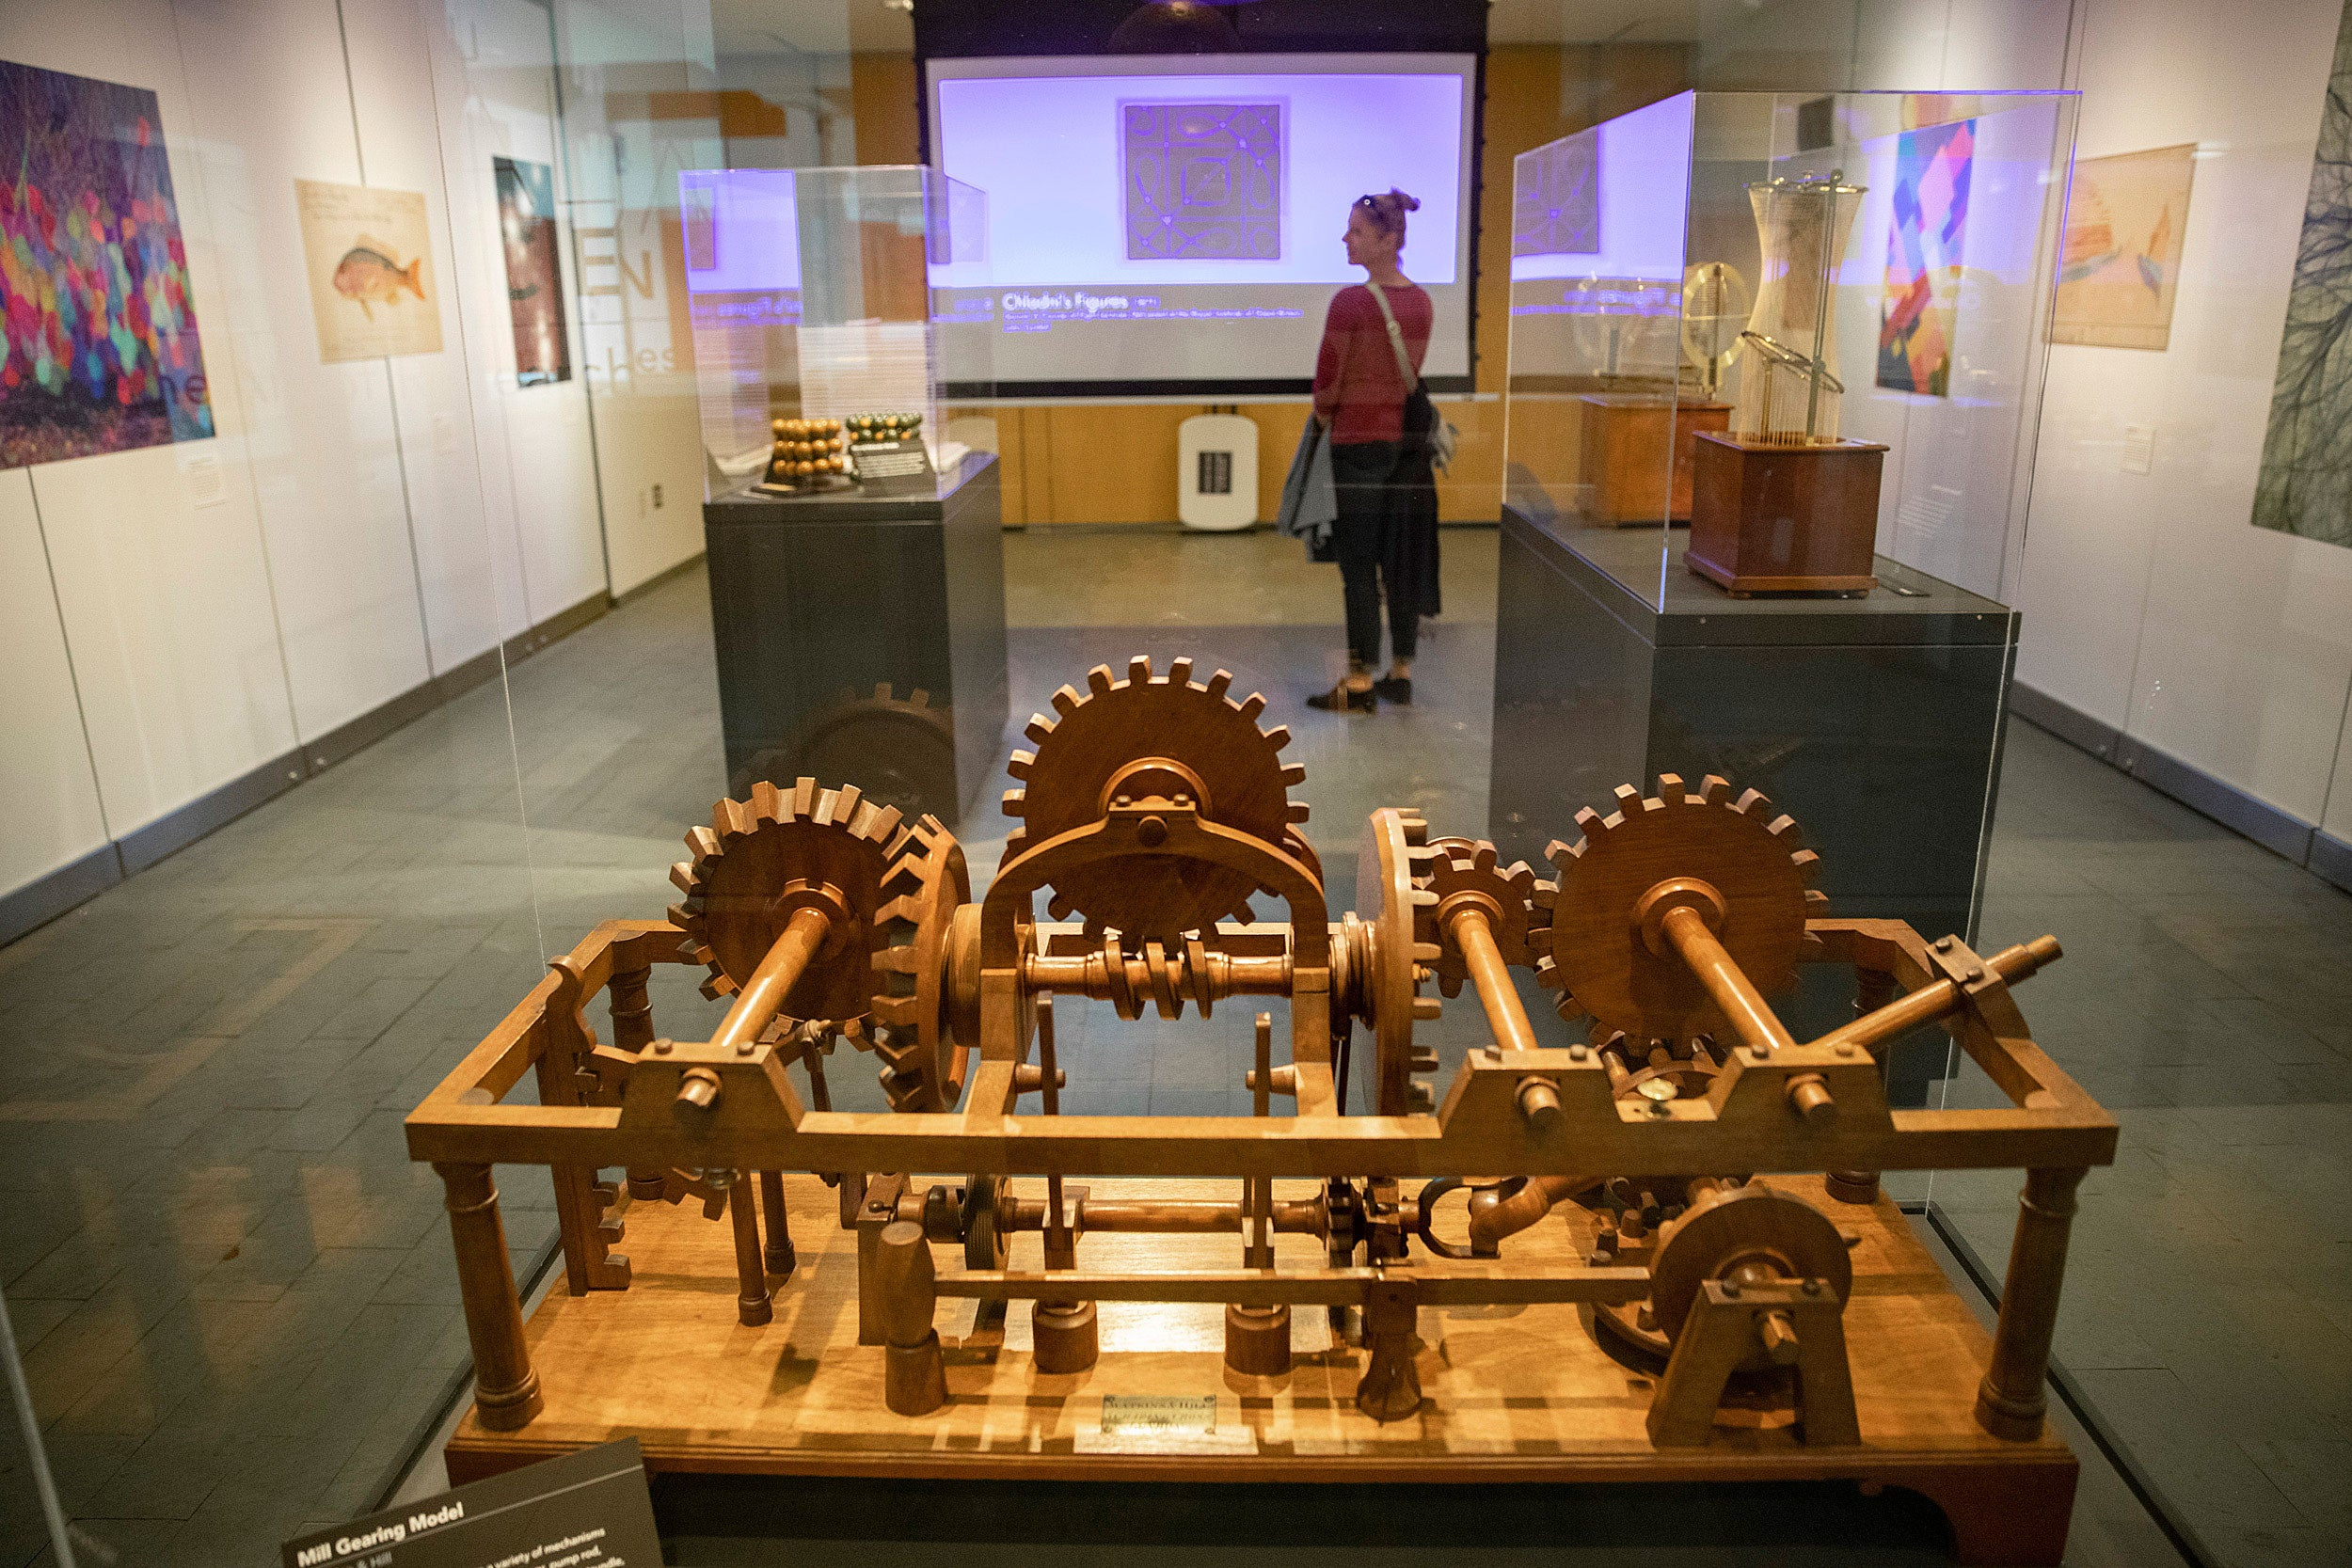 13. Harvard students learned mechanics from this wooden model of interlocking gears that was deployed in mills.